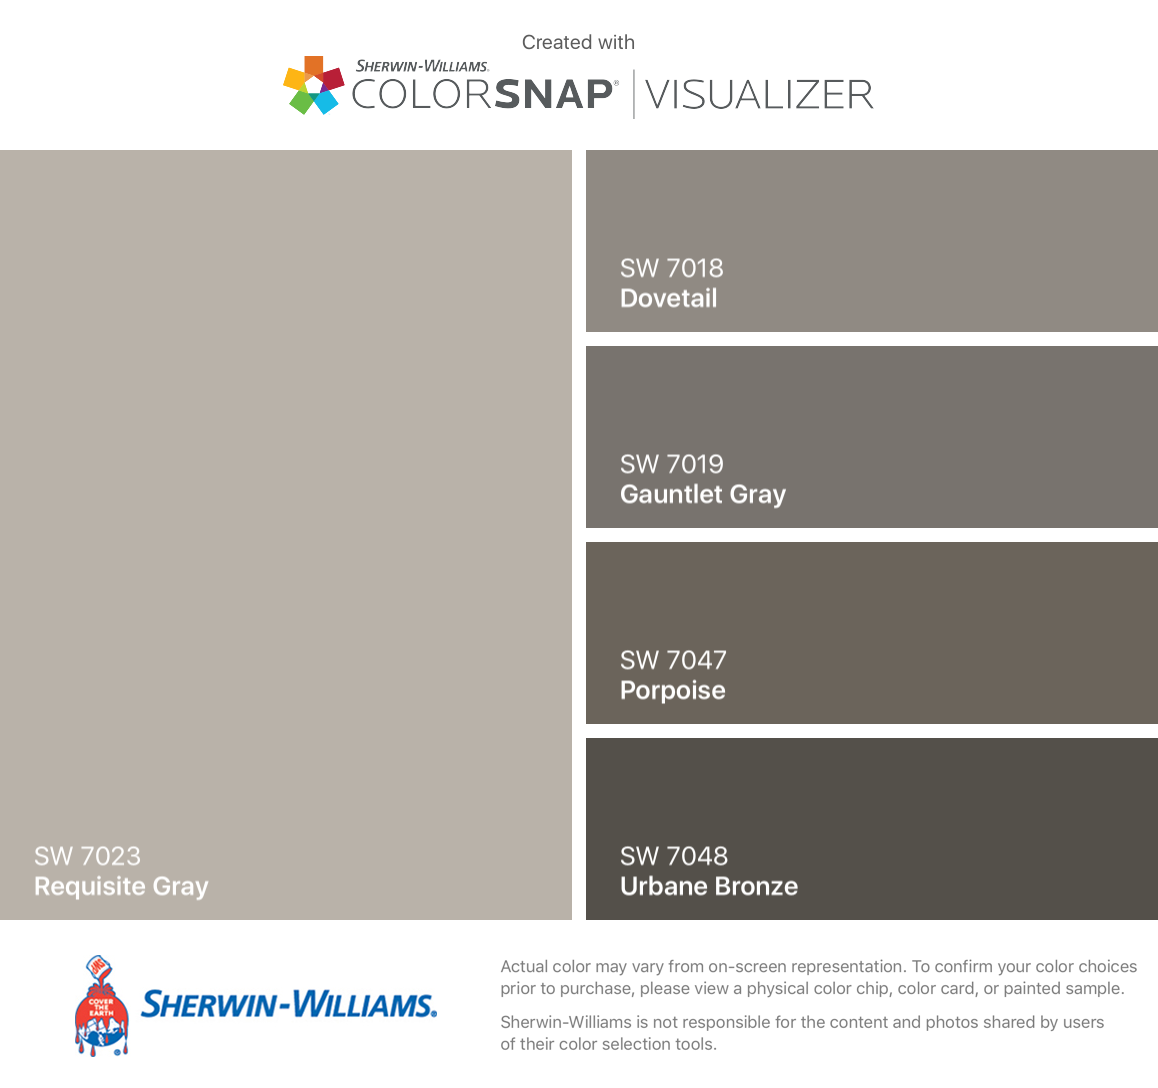 7018 dovetail sherwin williams - I Found These Colors With Colorsnap Visualizer For Iphone By Sherwin Williams Requisite Gray Sw Dovetail Sw Gauntlet Gray Sw Porpoise Sw Urbane Bronze